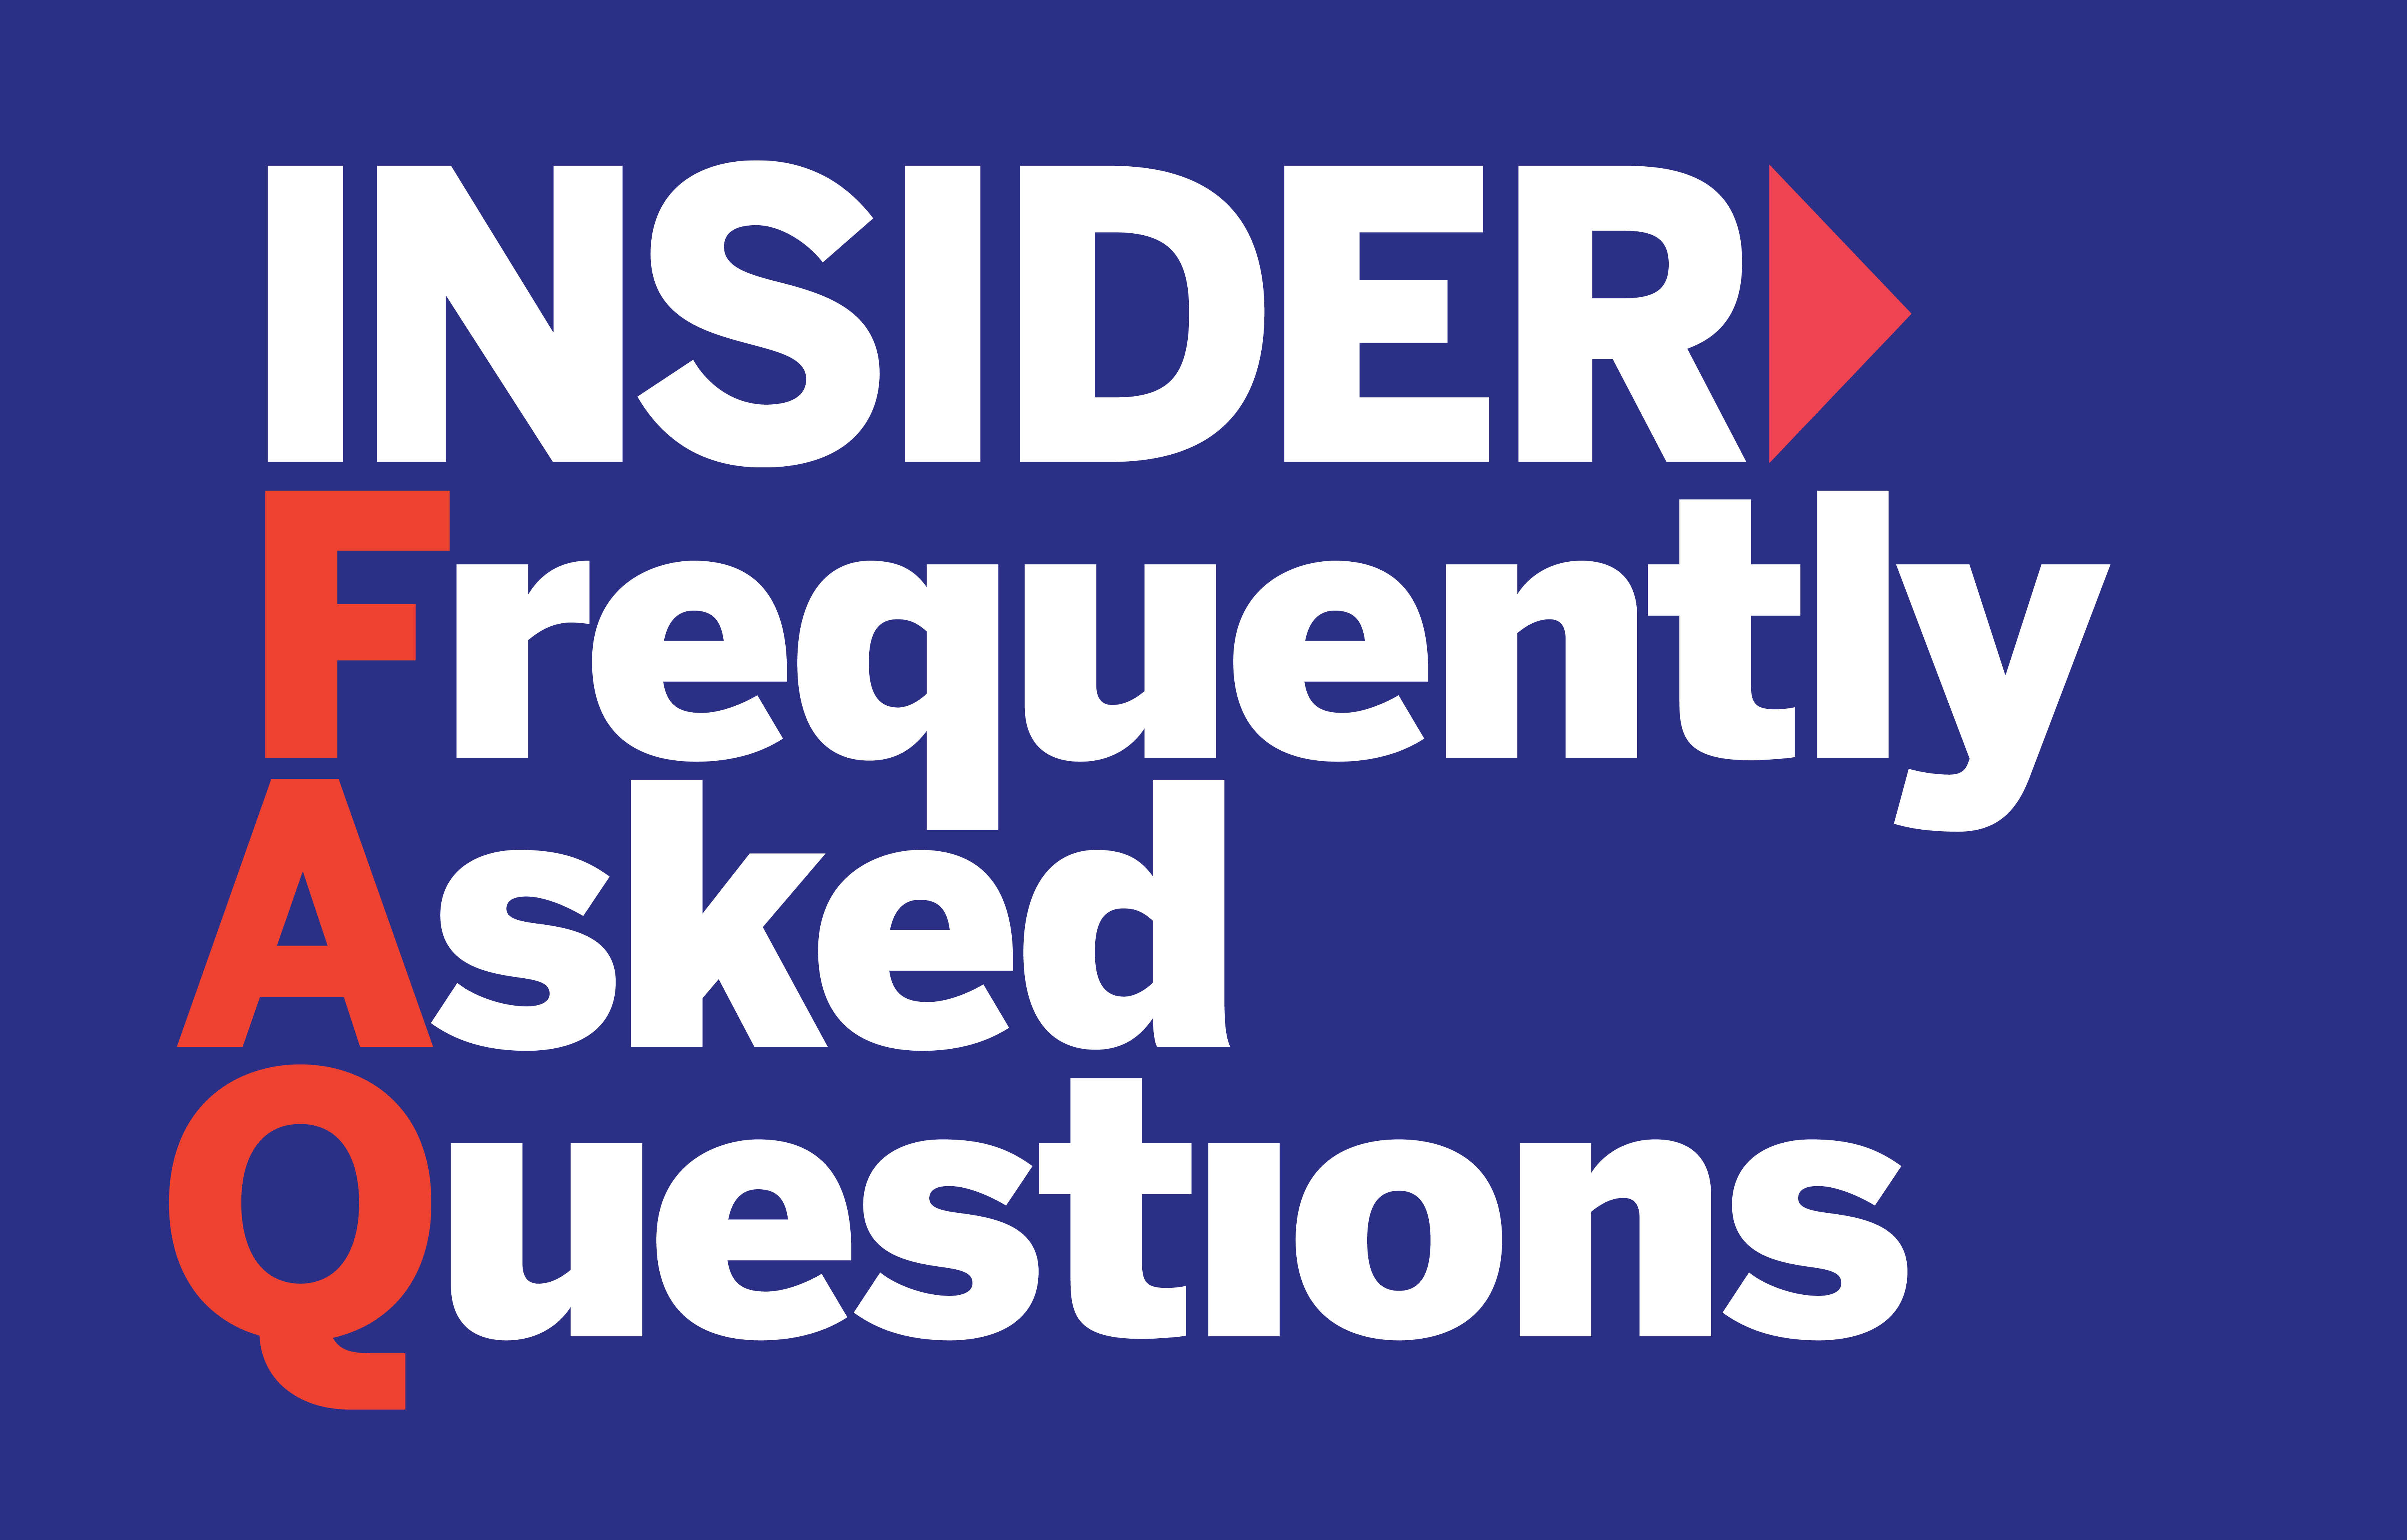 Insider Frequently Asked Questions